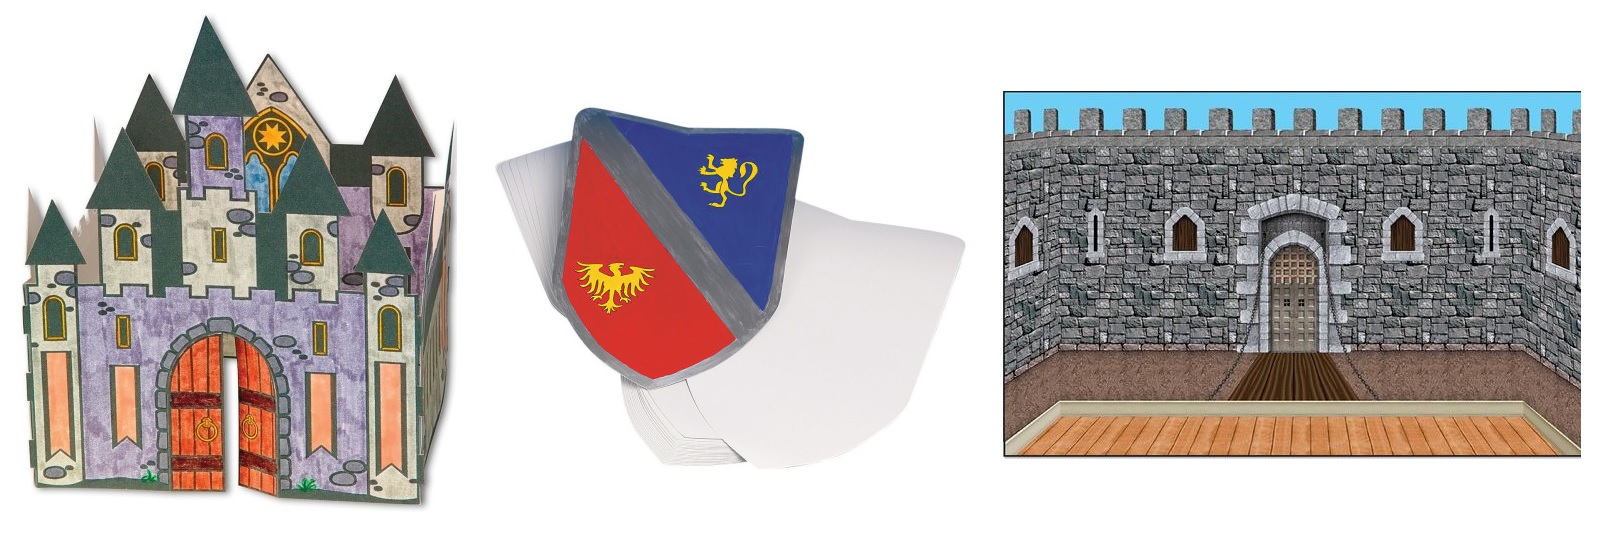 Fortress clipart moat For moat themes over the